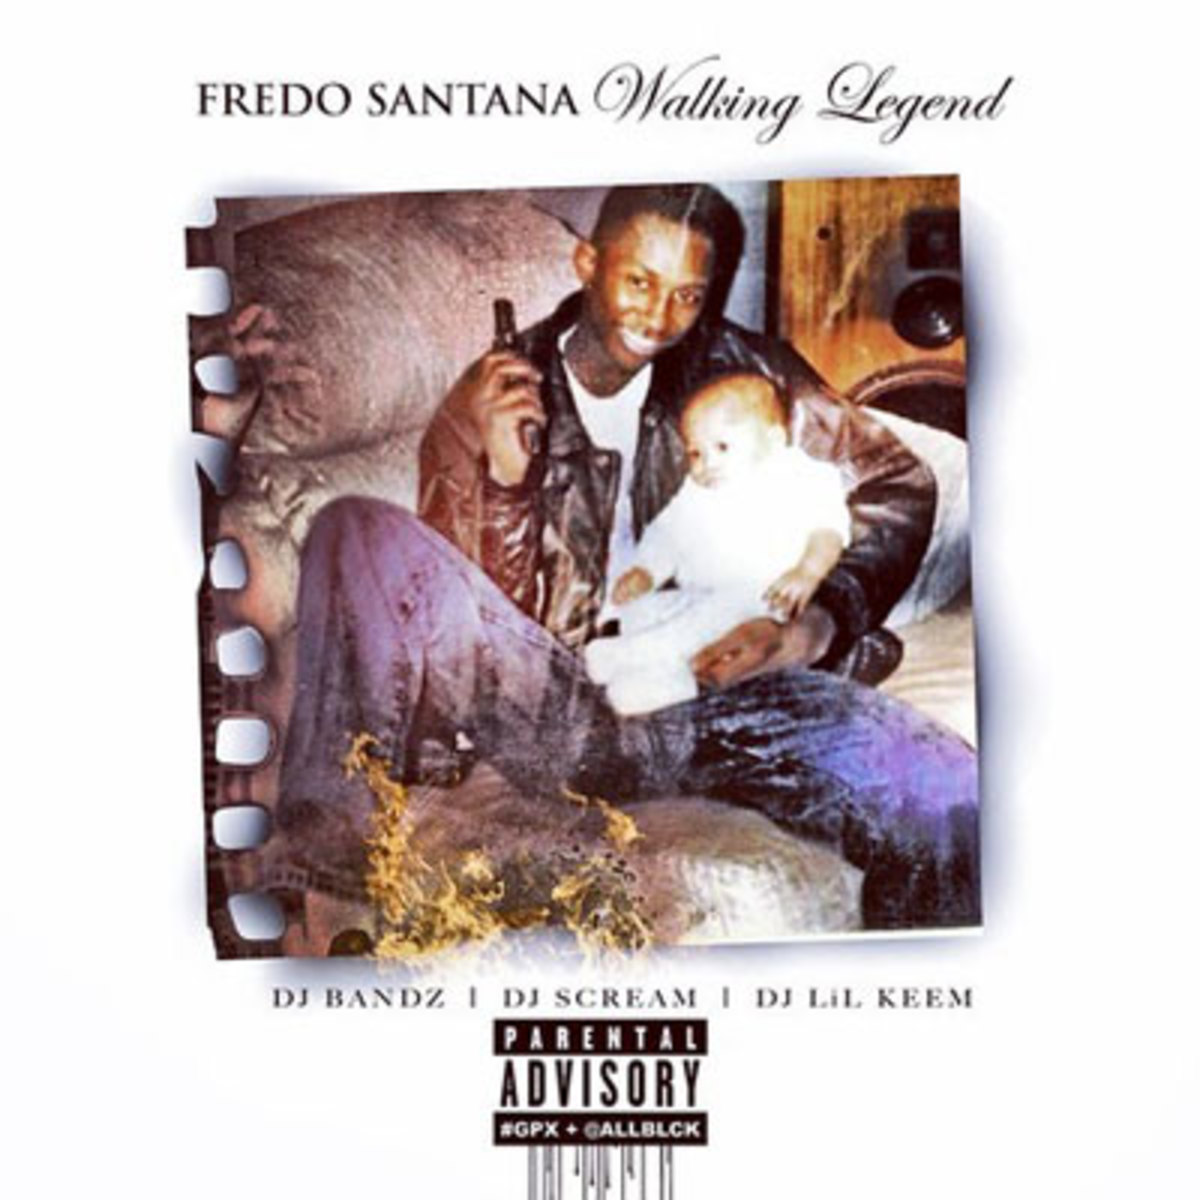 fredosantana-walkinglegend.jpg